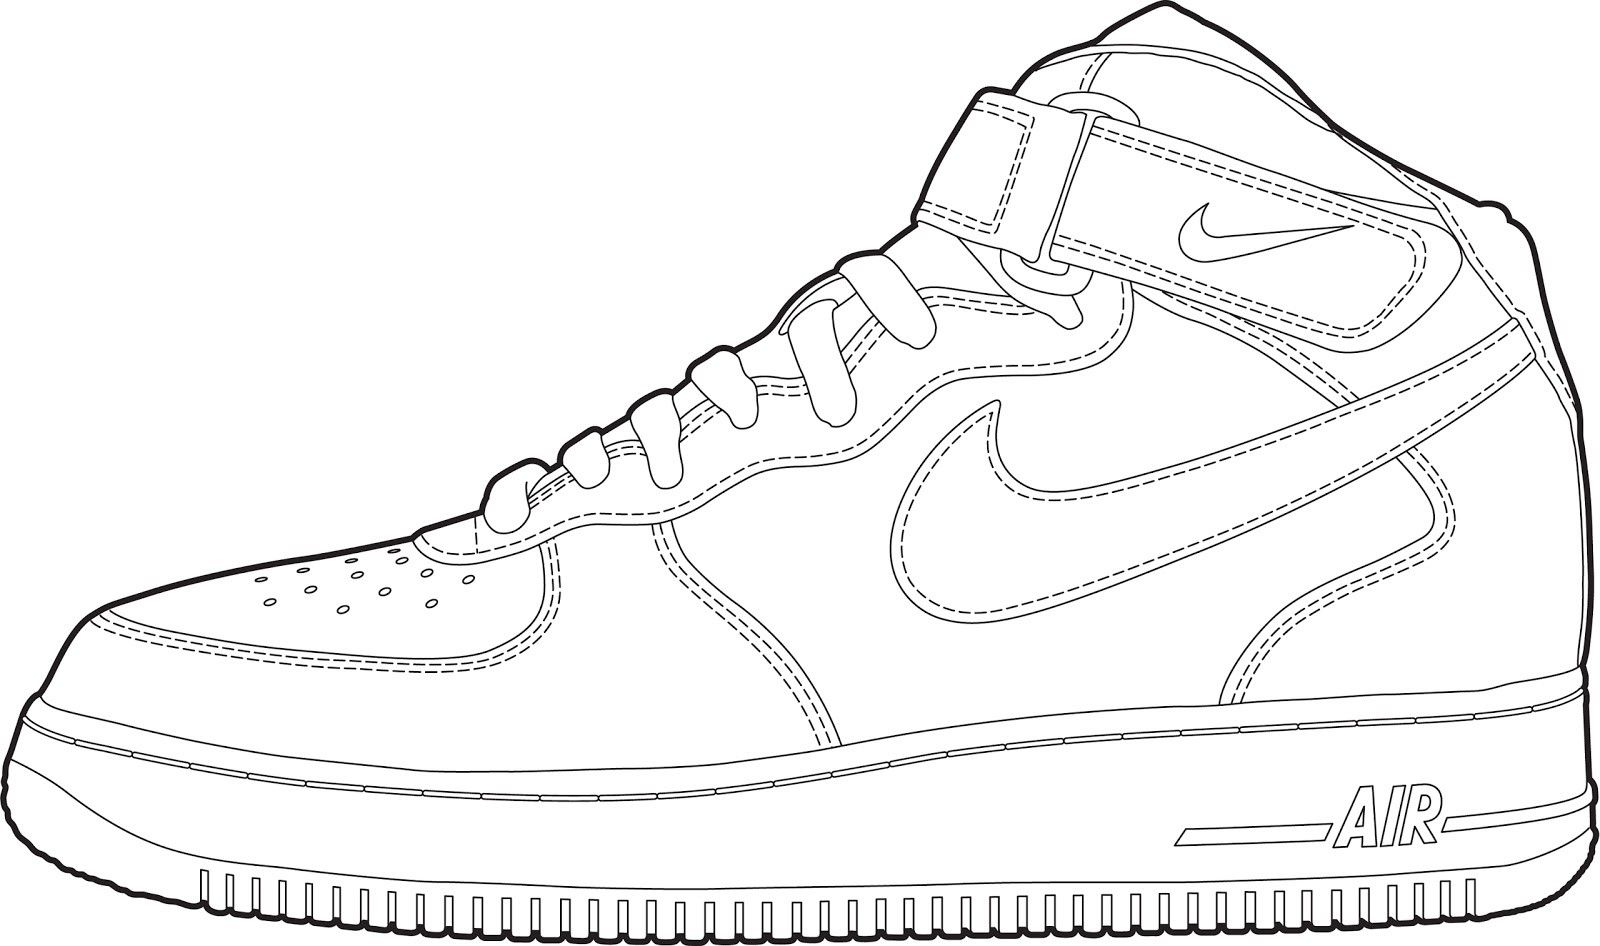 Air Jordan Coloring Pages Shoes New Drawn Sneakers Coloring Page Pencil And In Color Drawn Sneakers Of Air J Sneakers Drawing Sneakers Sketch Pictures Of Shoes